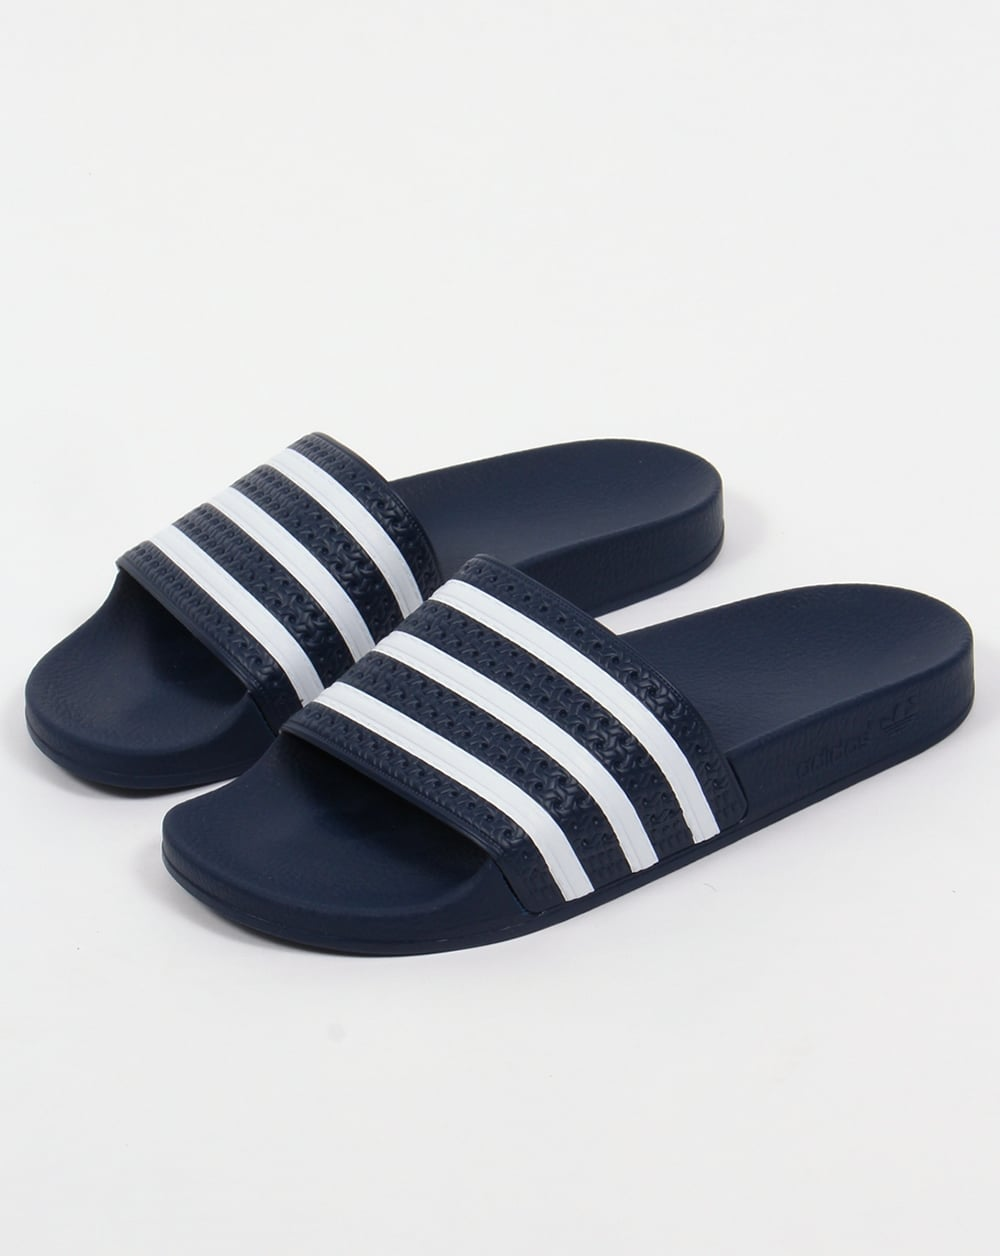 online retailer 9d17d 05dad Adidas Adilette Sliders NavyWhite,sandals,pool,mens